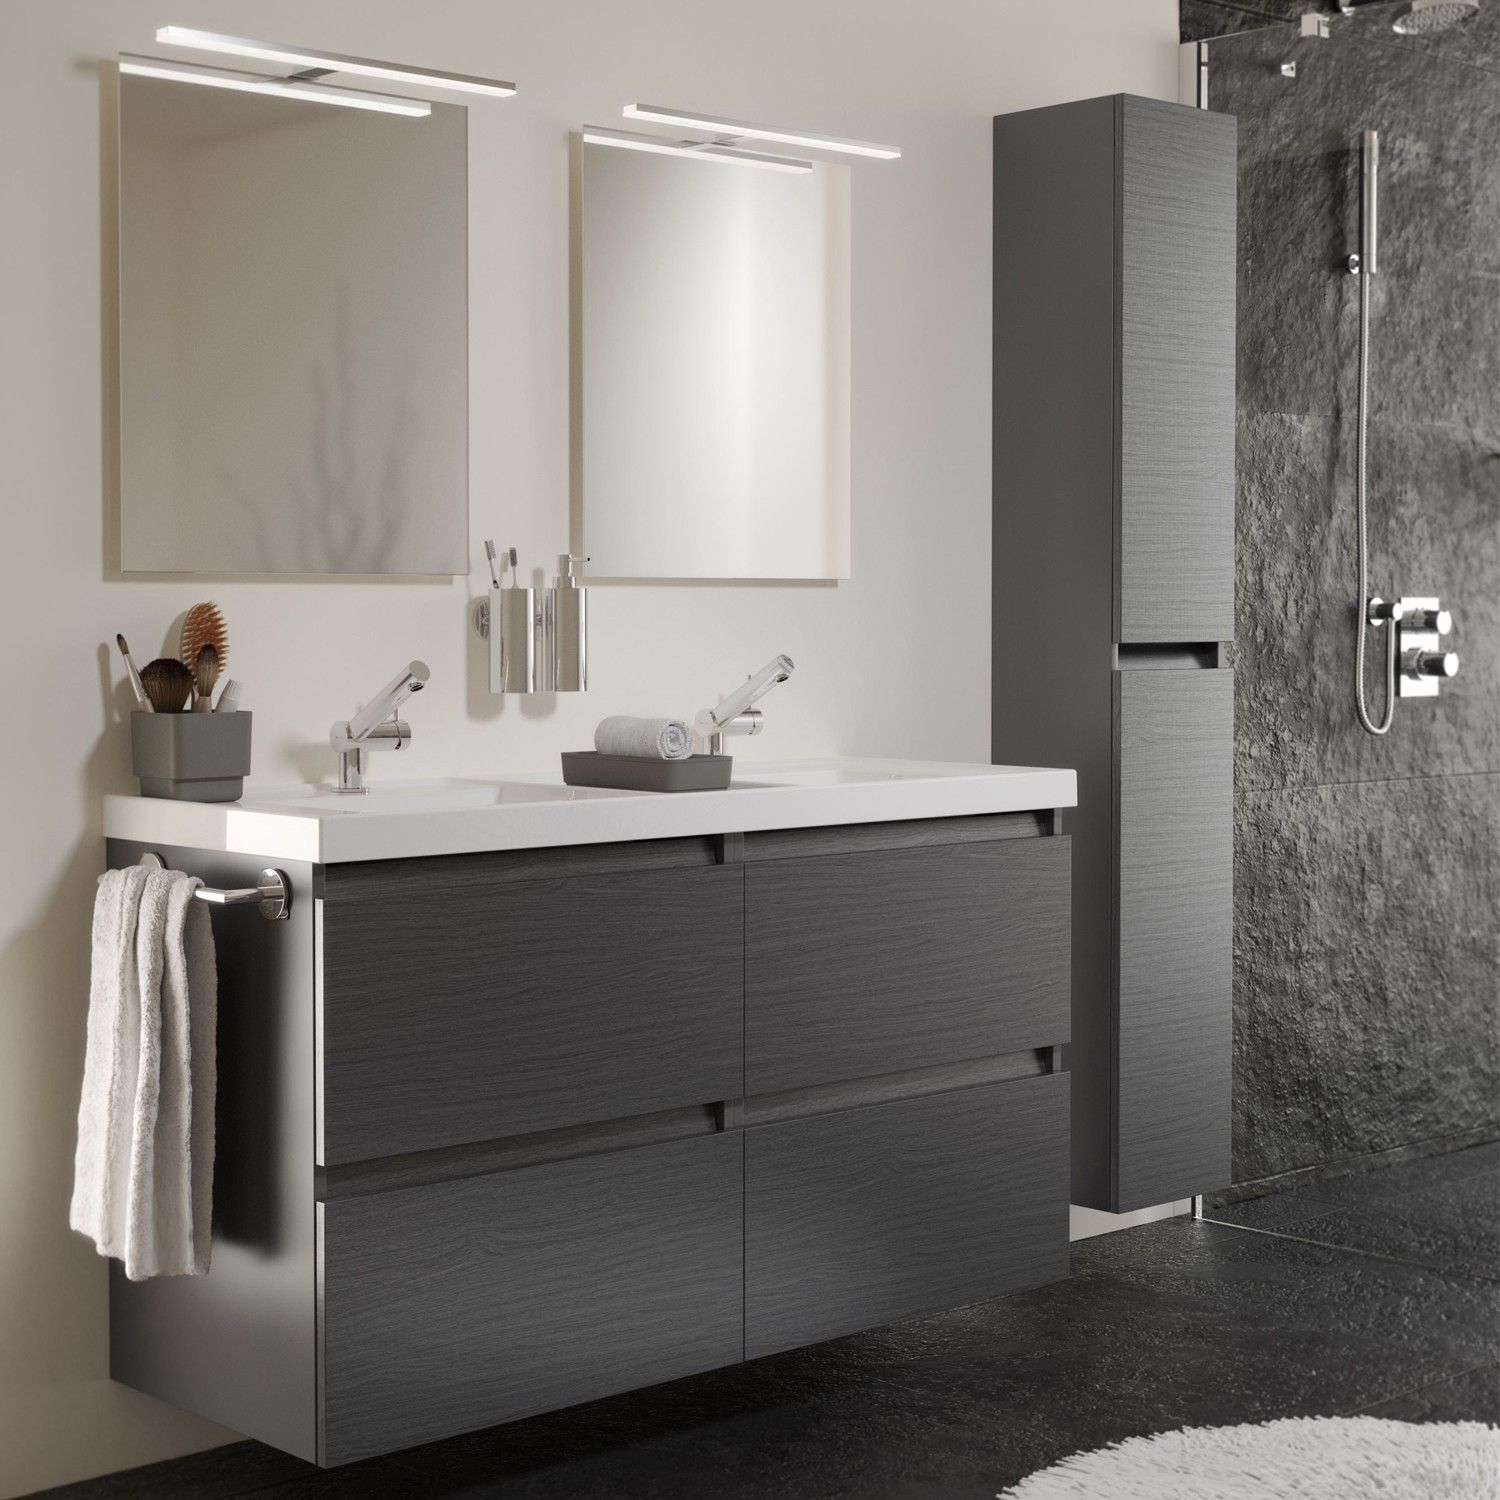 Modern Bathroom Vanity How To Choose The Right Size Design Inside Modern Bathroom Vanities Search Modern Bathroom Vanities As Essen Bathroom Designs Moder